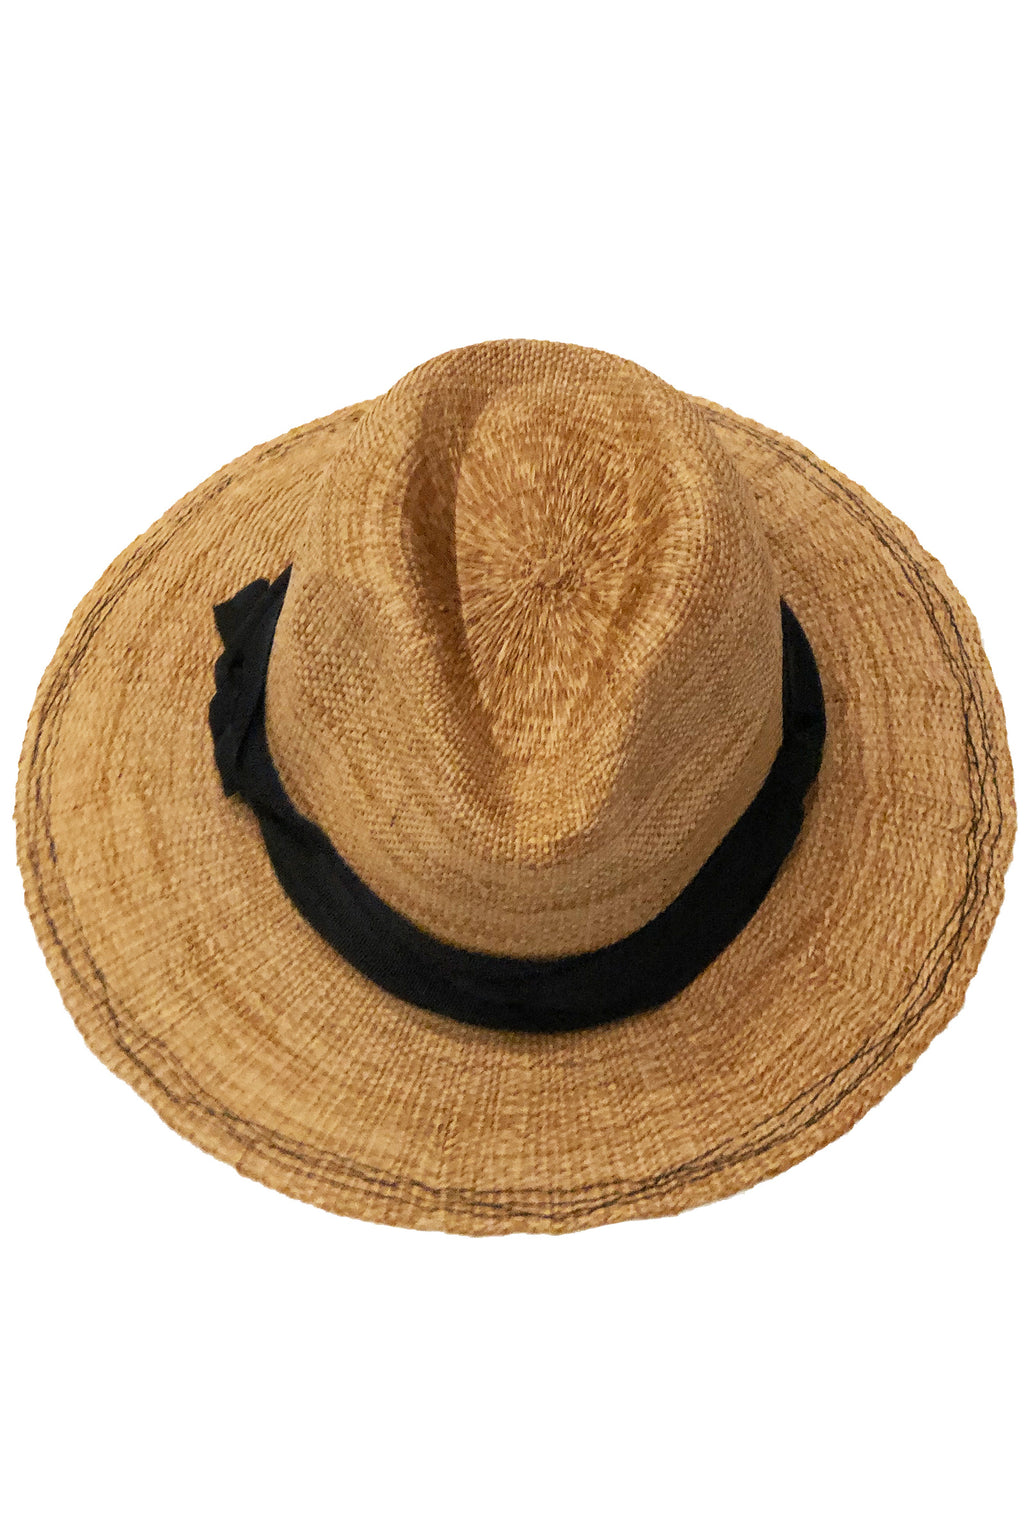 Lola Ehrlich Rise and Shine Straw Hat in Tabacco with Black Ribbon